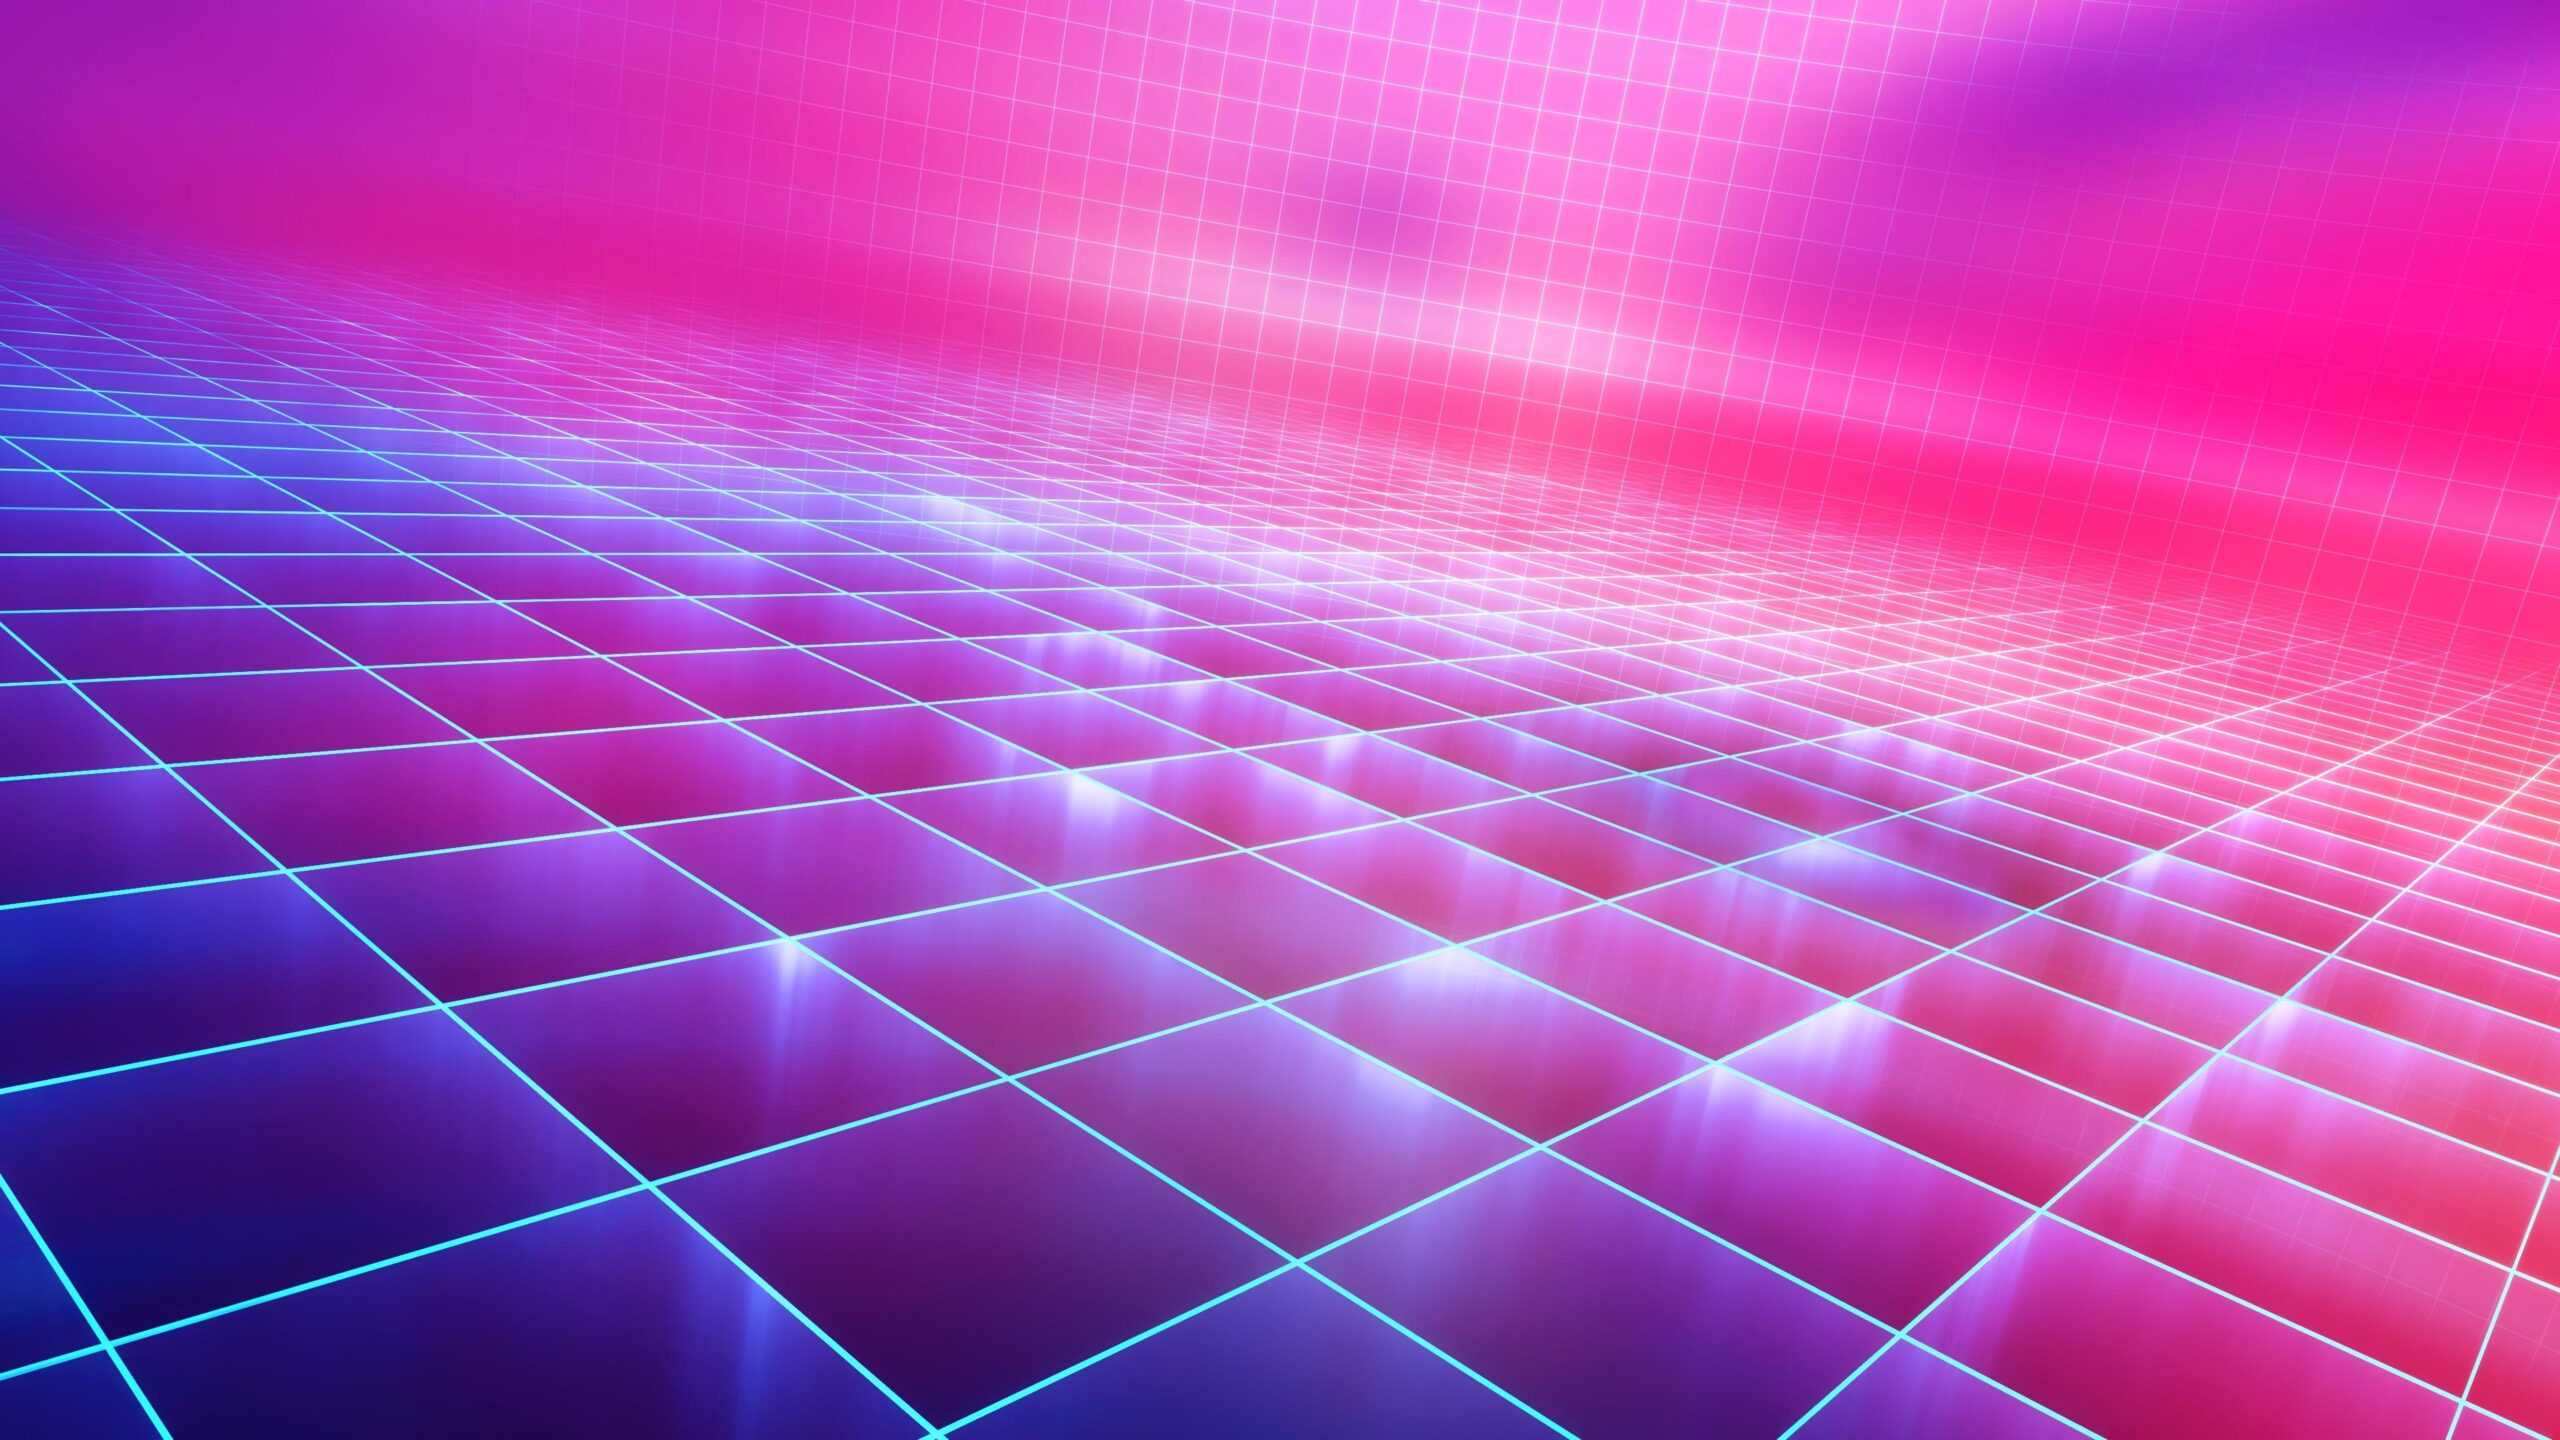 synthwave wallpaper 1366x768